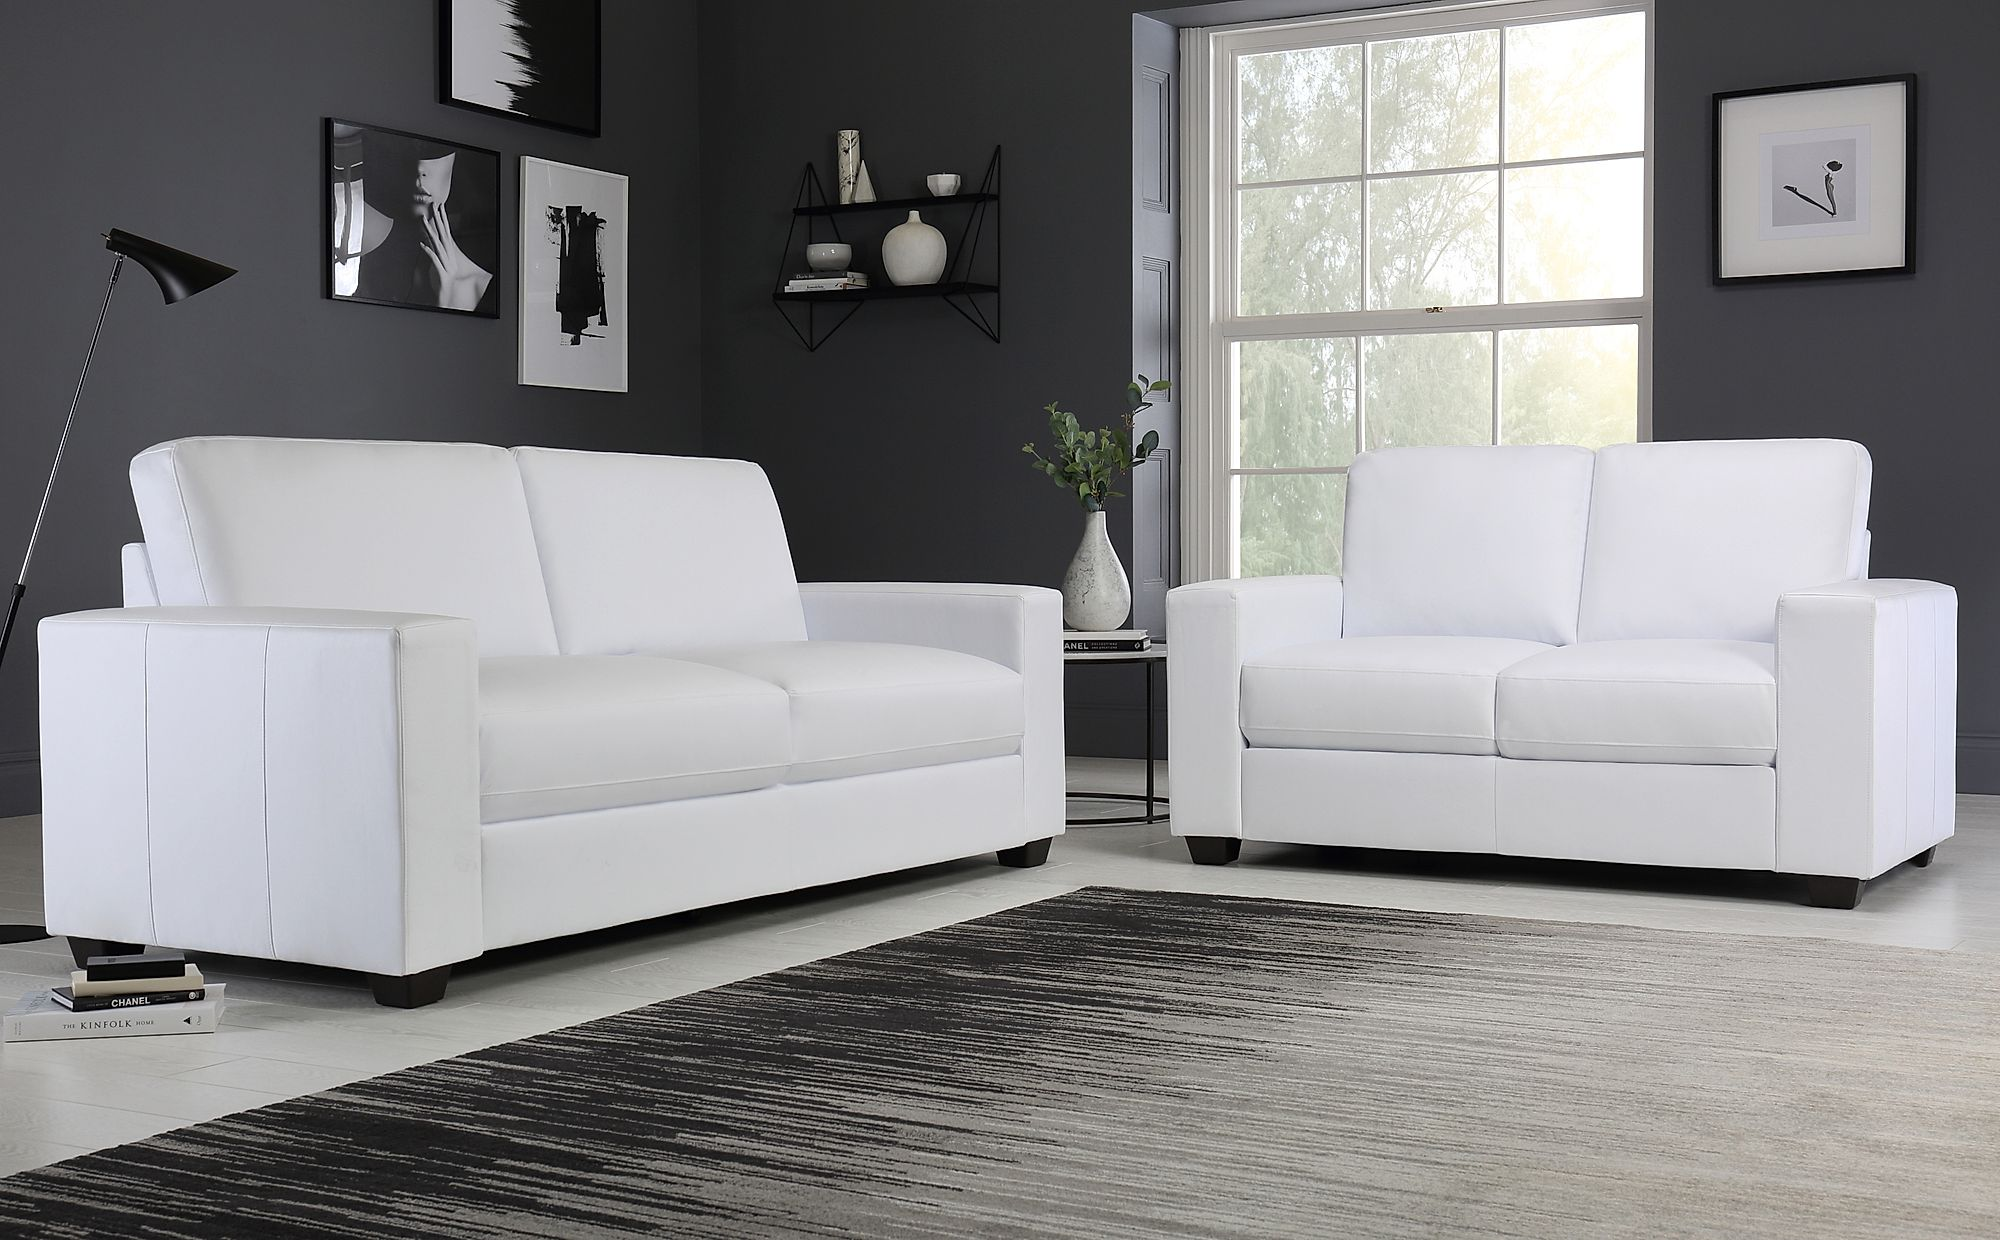 Tremendous Mission White Leather 3 2 Seater Sofa Set Short Links Chair Design For Home Short Linksinfo